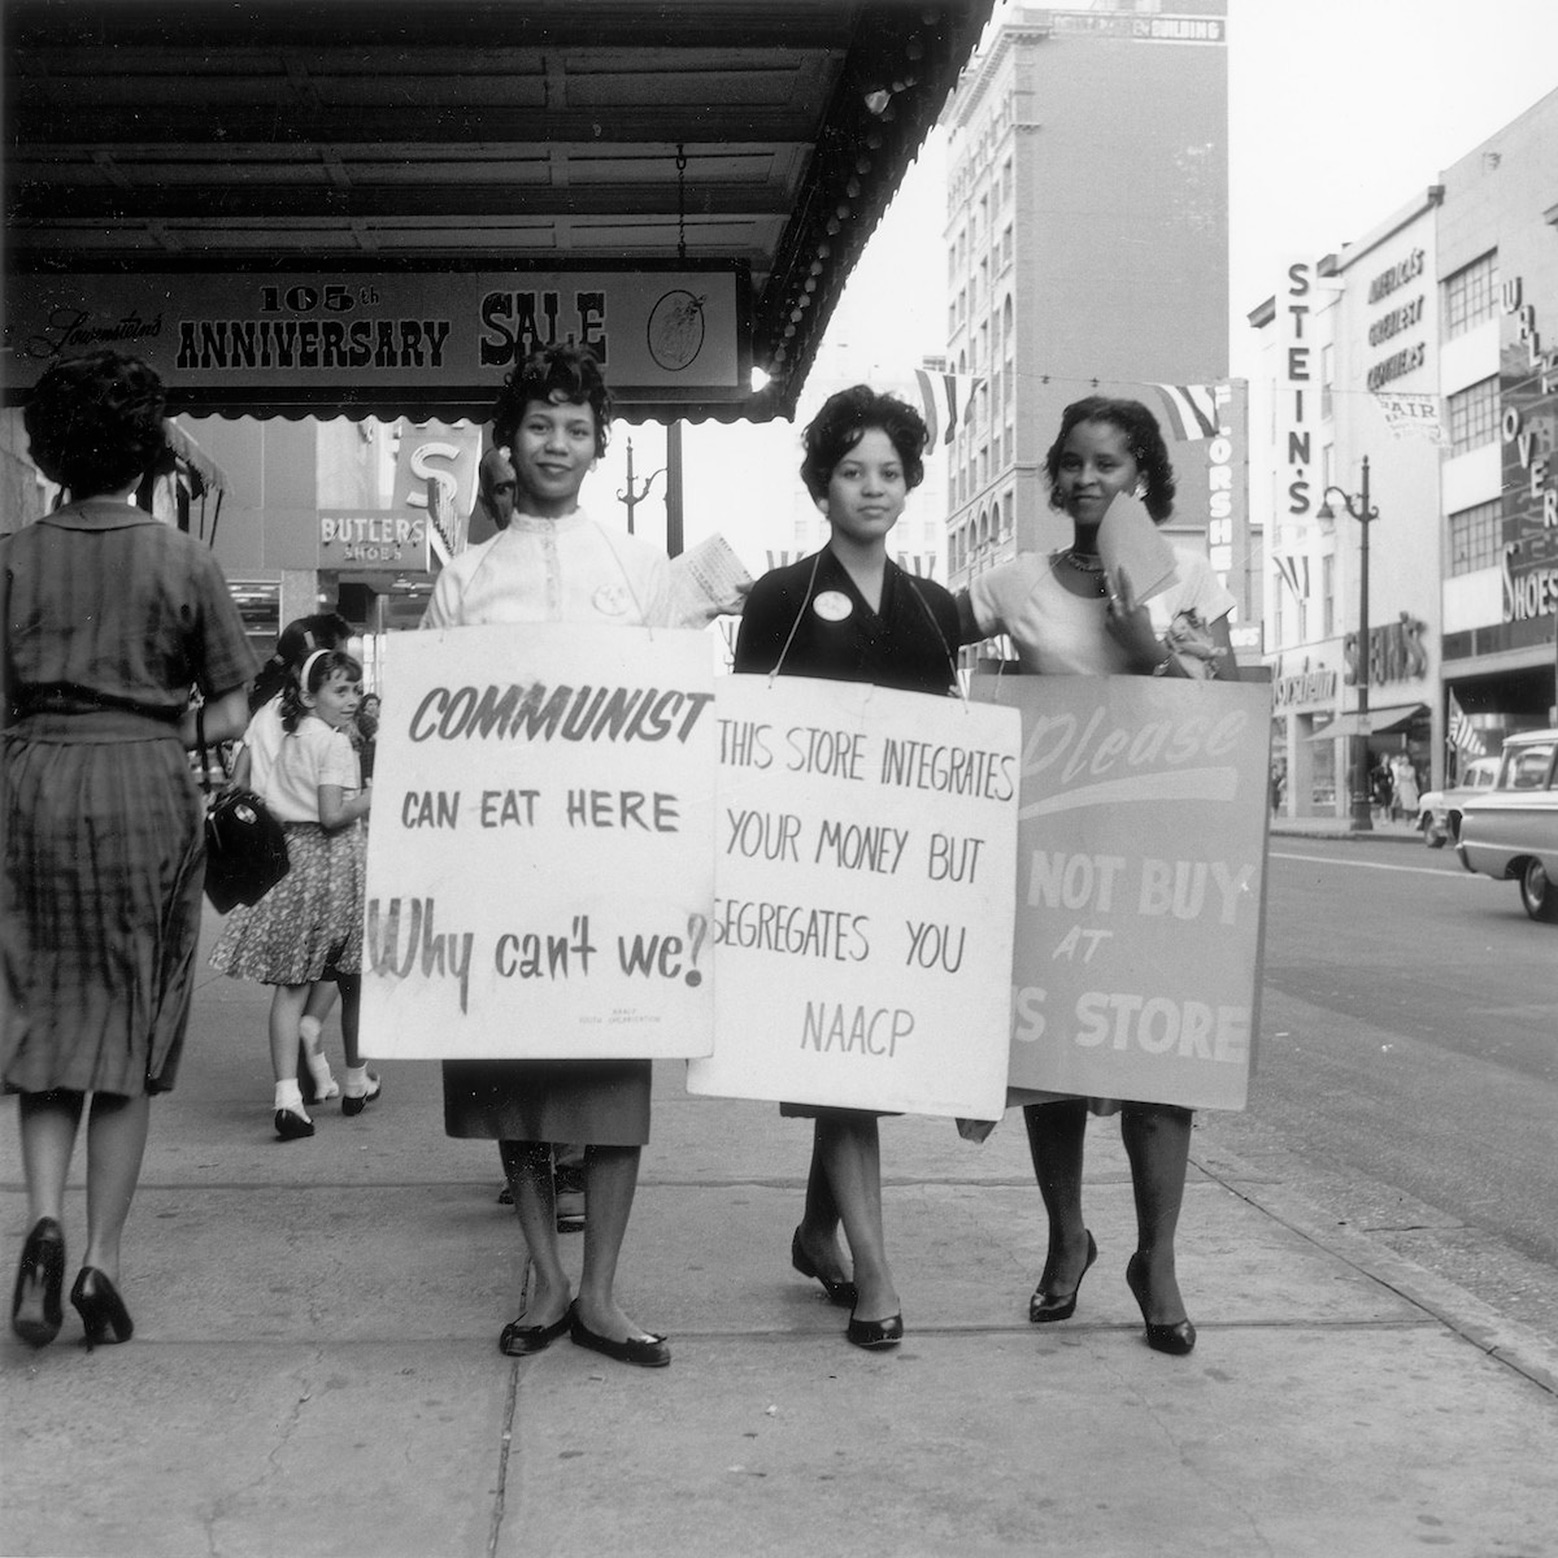 three women standing holding signs